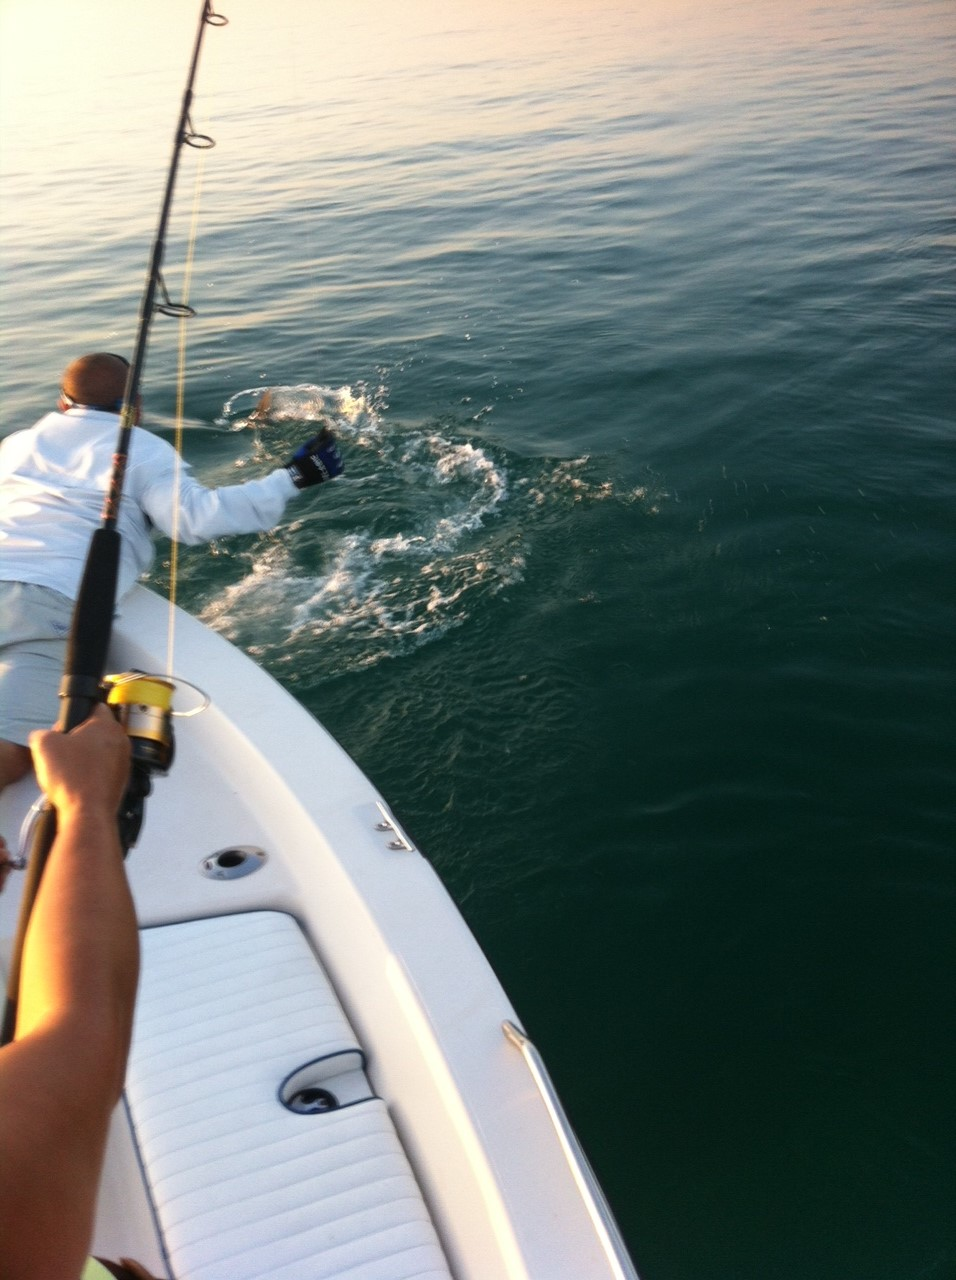 Tarpon coming to the boat for a release off theSeven Mile Bridge in Marathon. Tarpon fishing charters are prime this time of year!